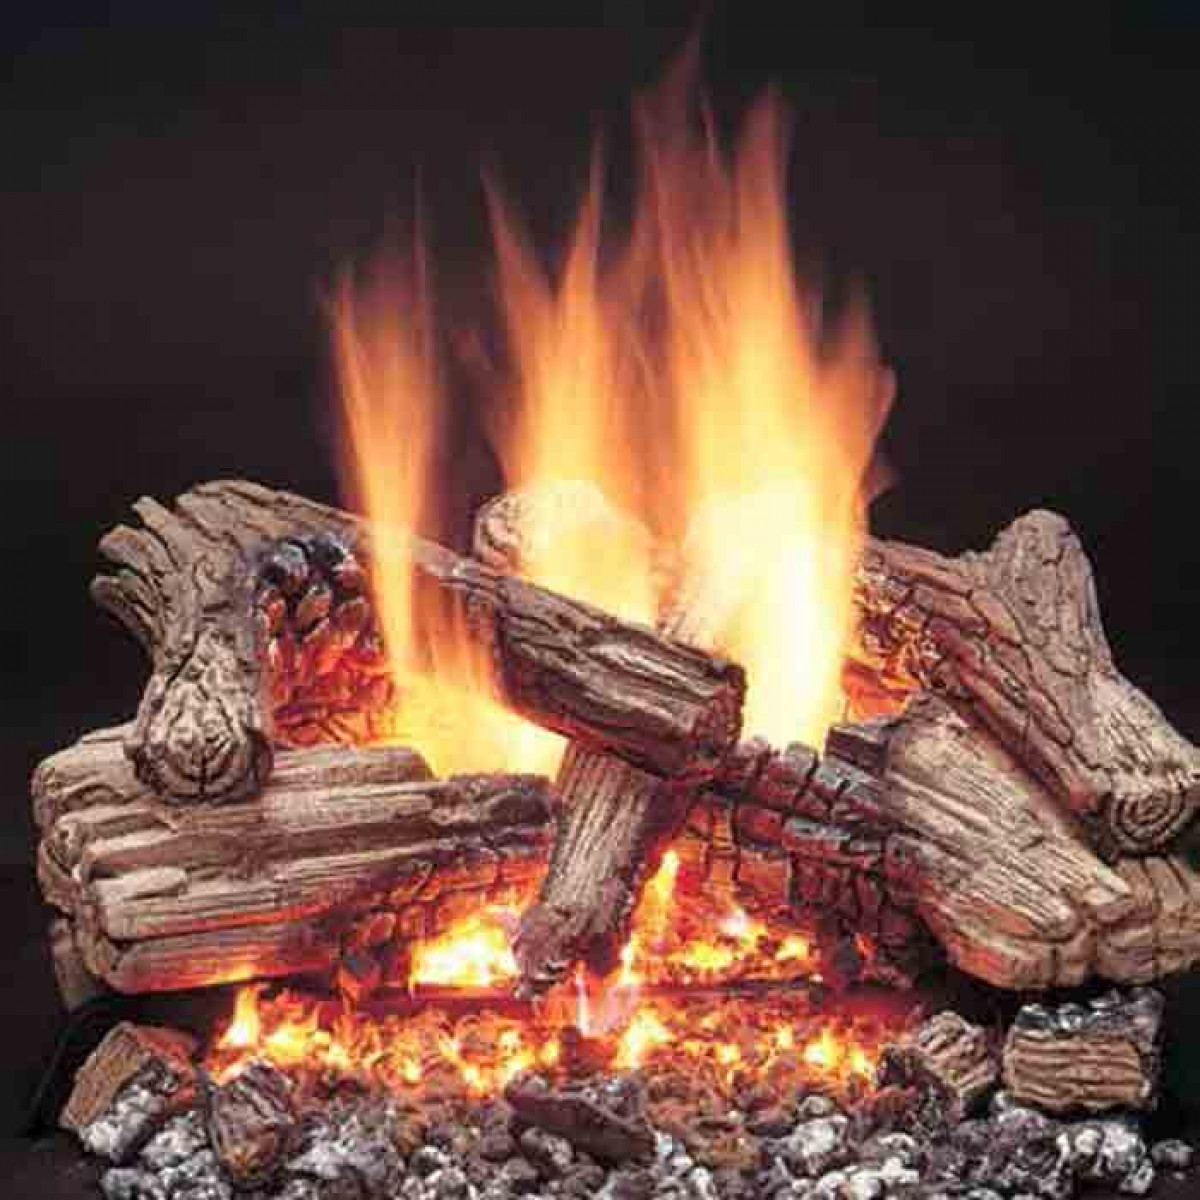 Majestic Vdy24 18d3r 6 Piece Refractory Cement Log Set For